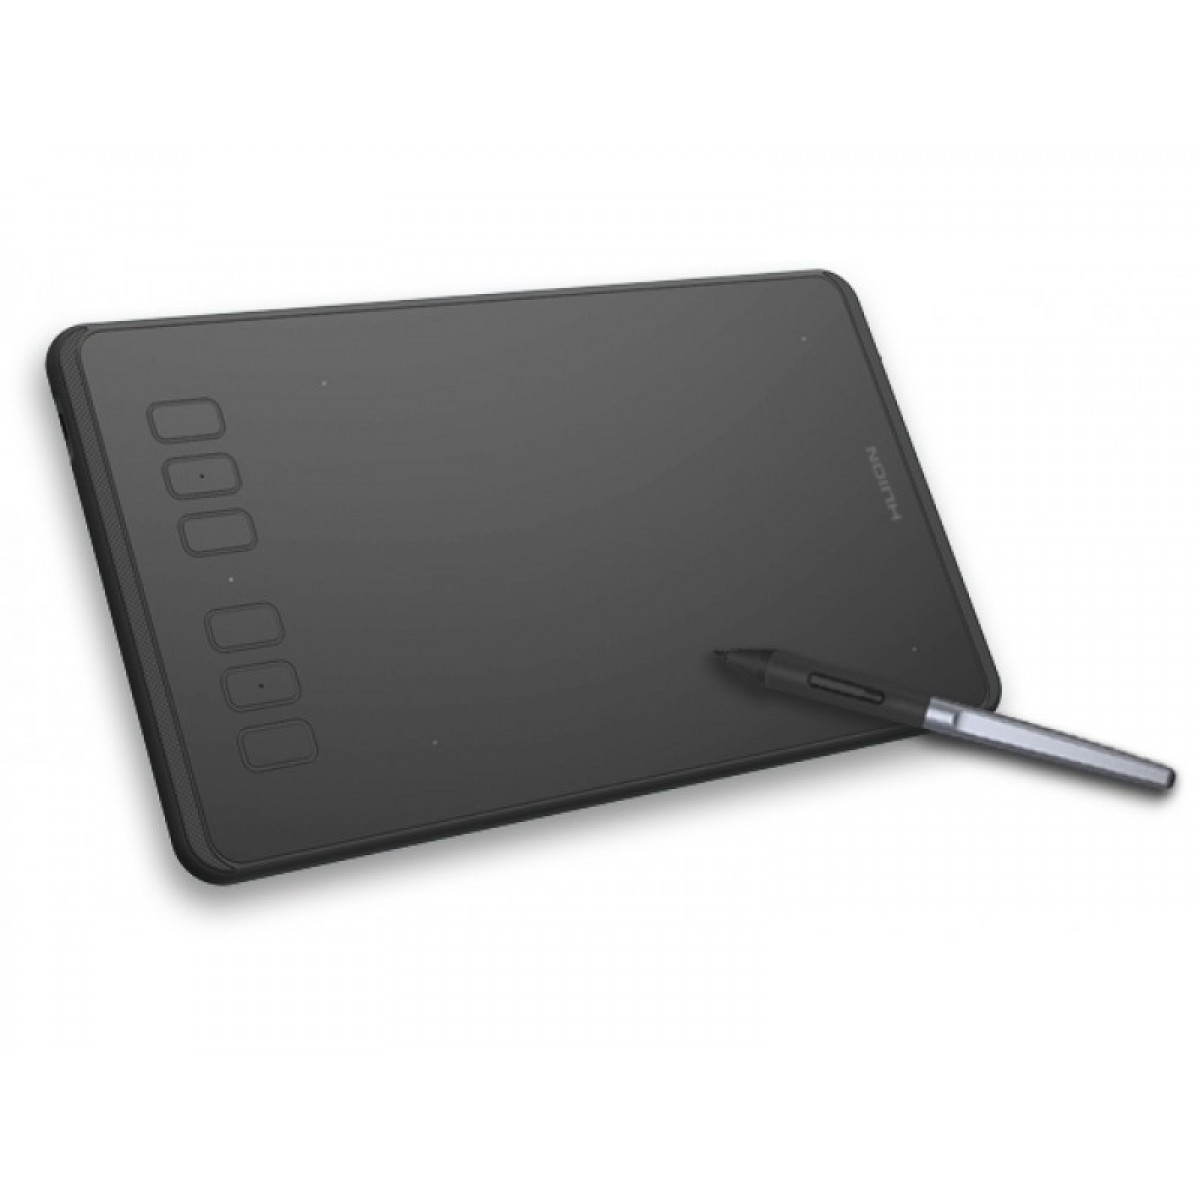 HUION Huion Inspiroy H640P Graphic Drawing Tablet - The School Locker